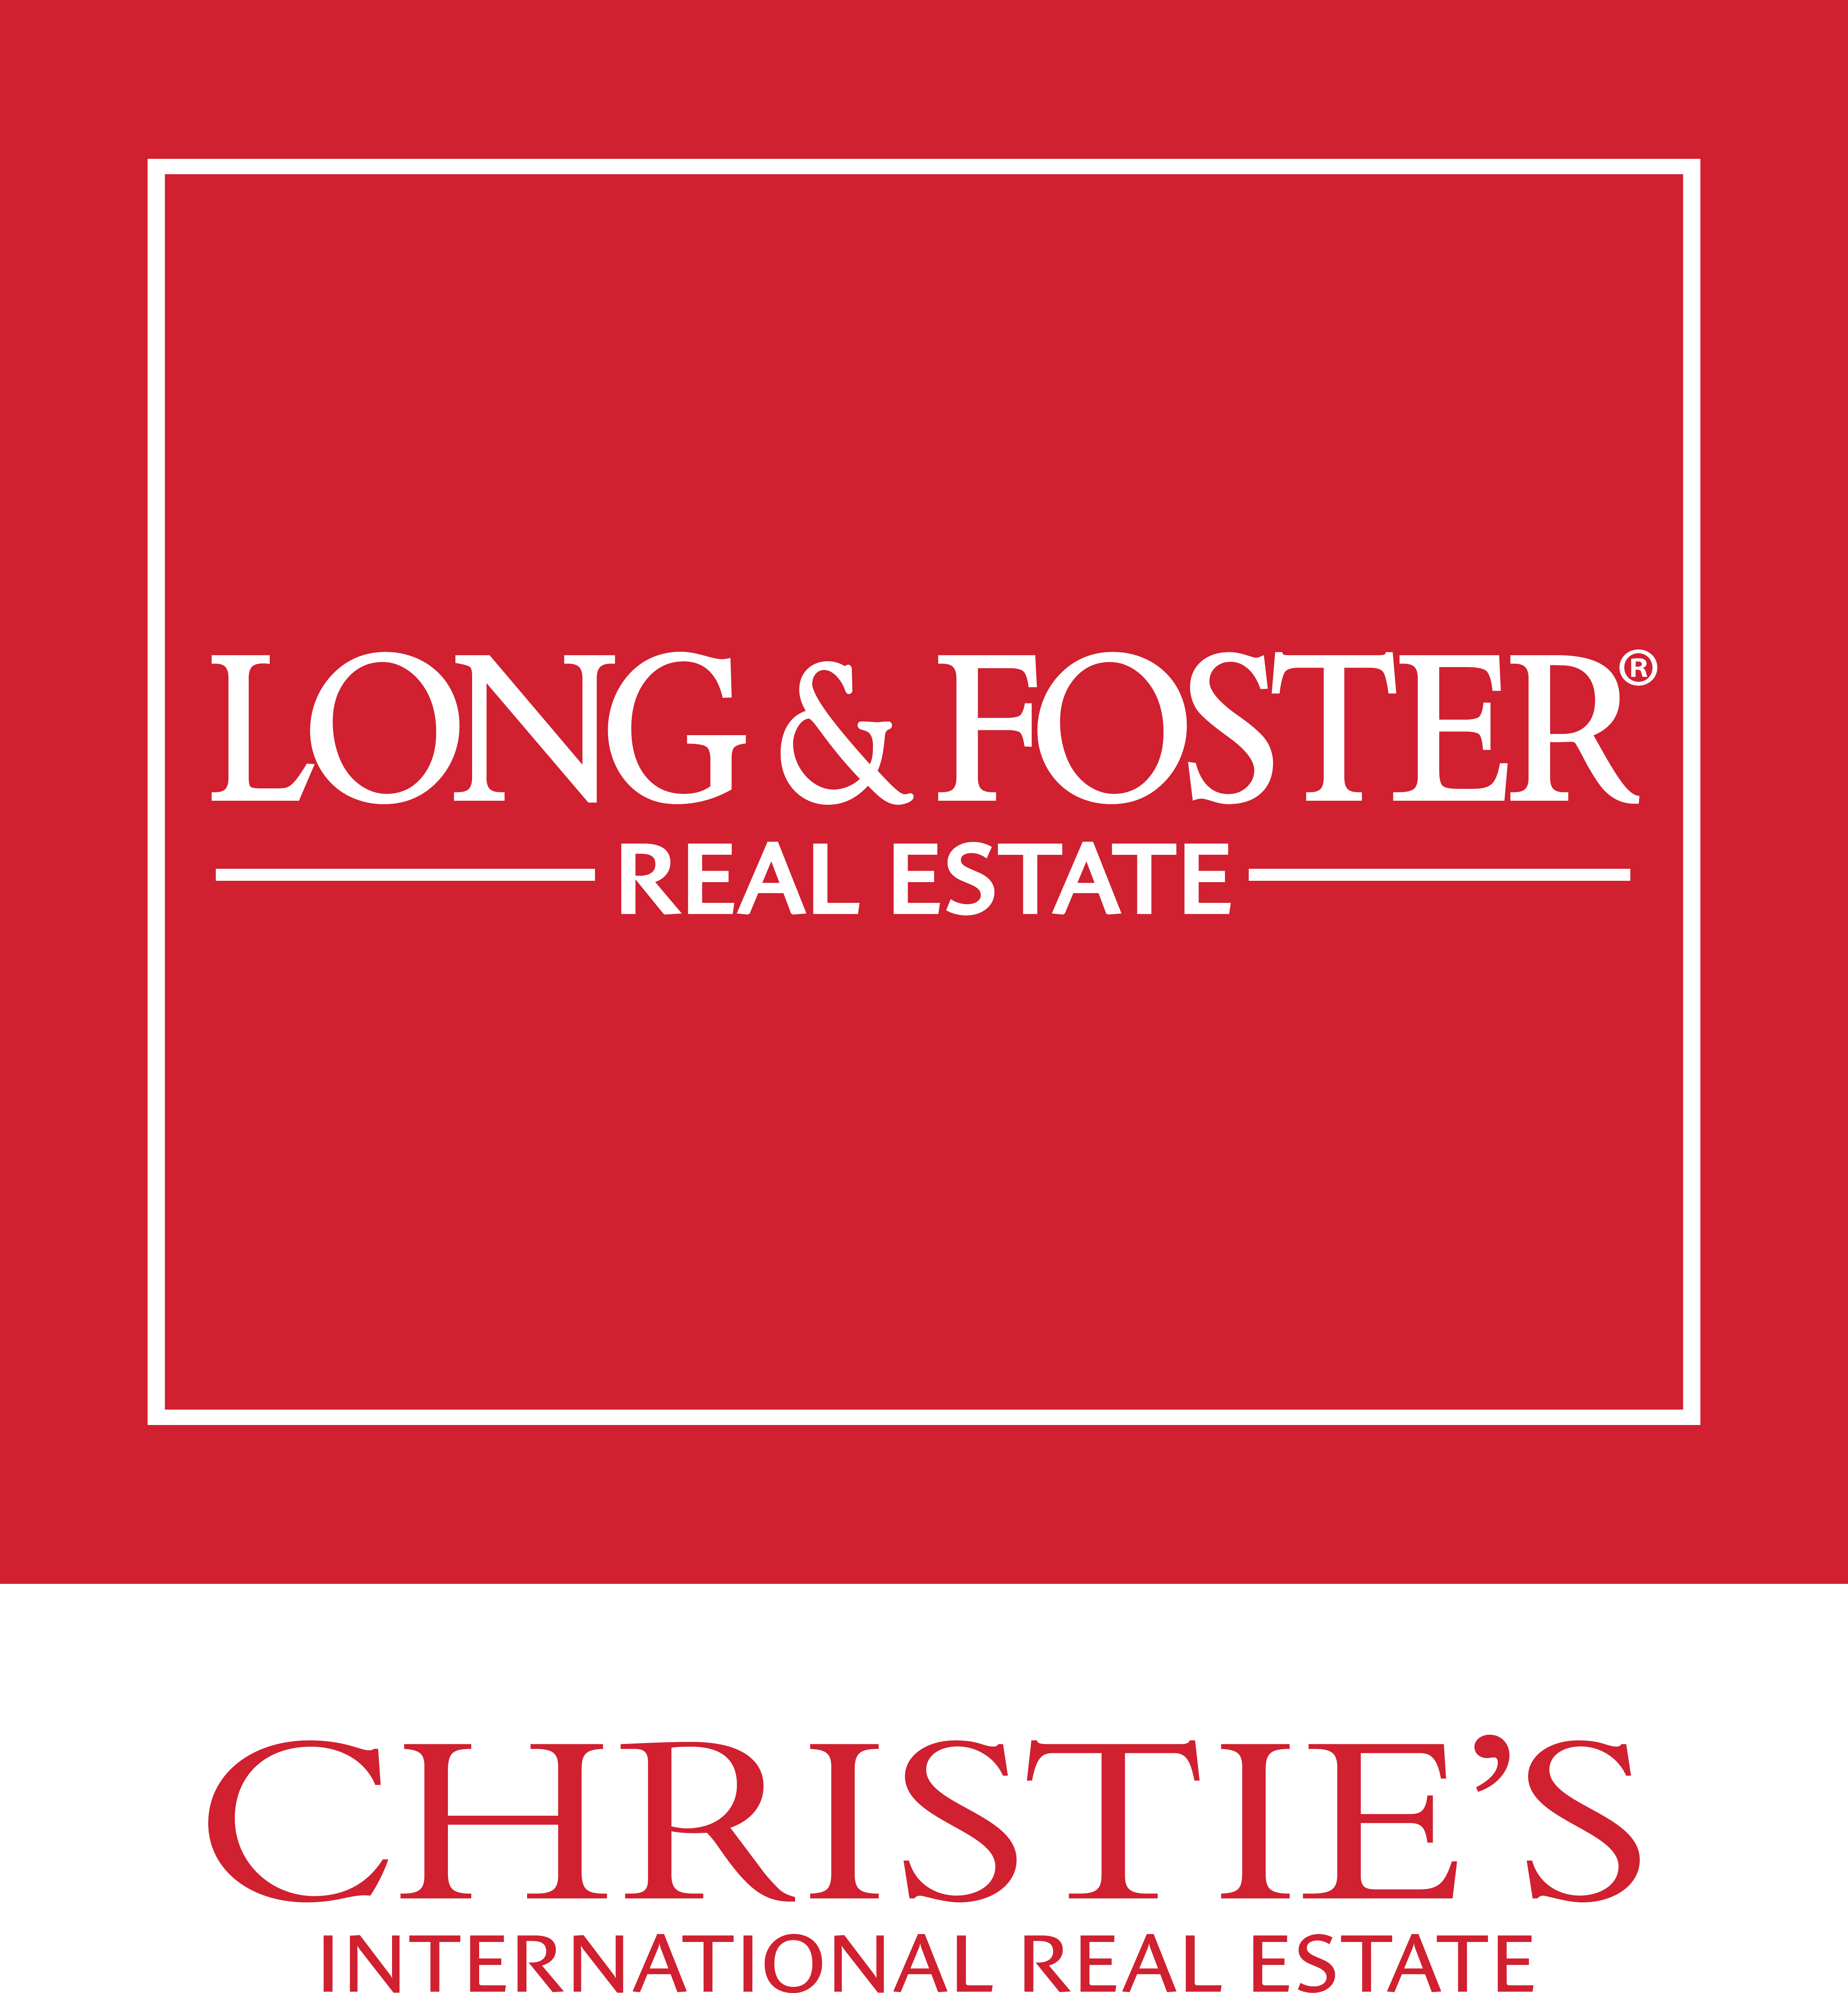 William and Kay Leahy of Long & Foster Real Estate, Inc